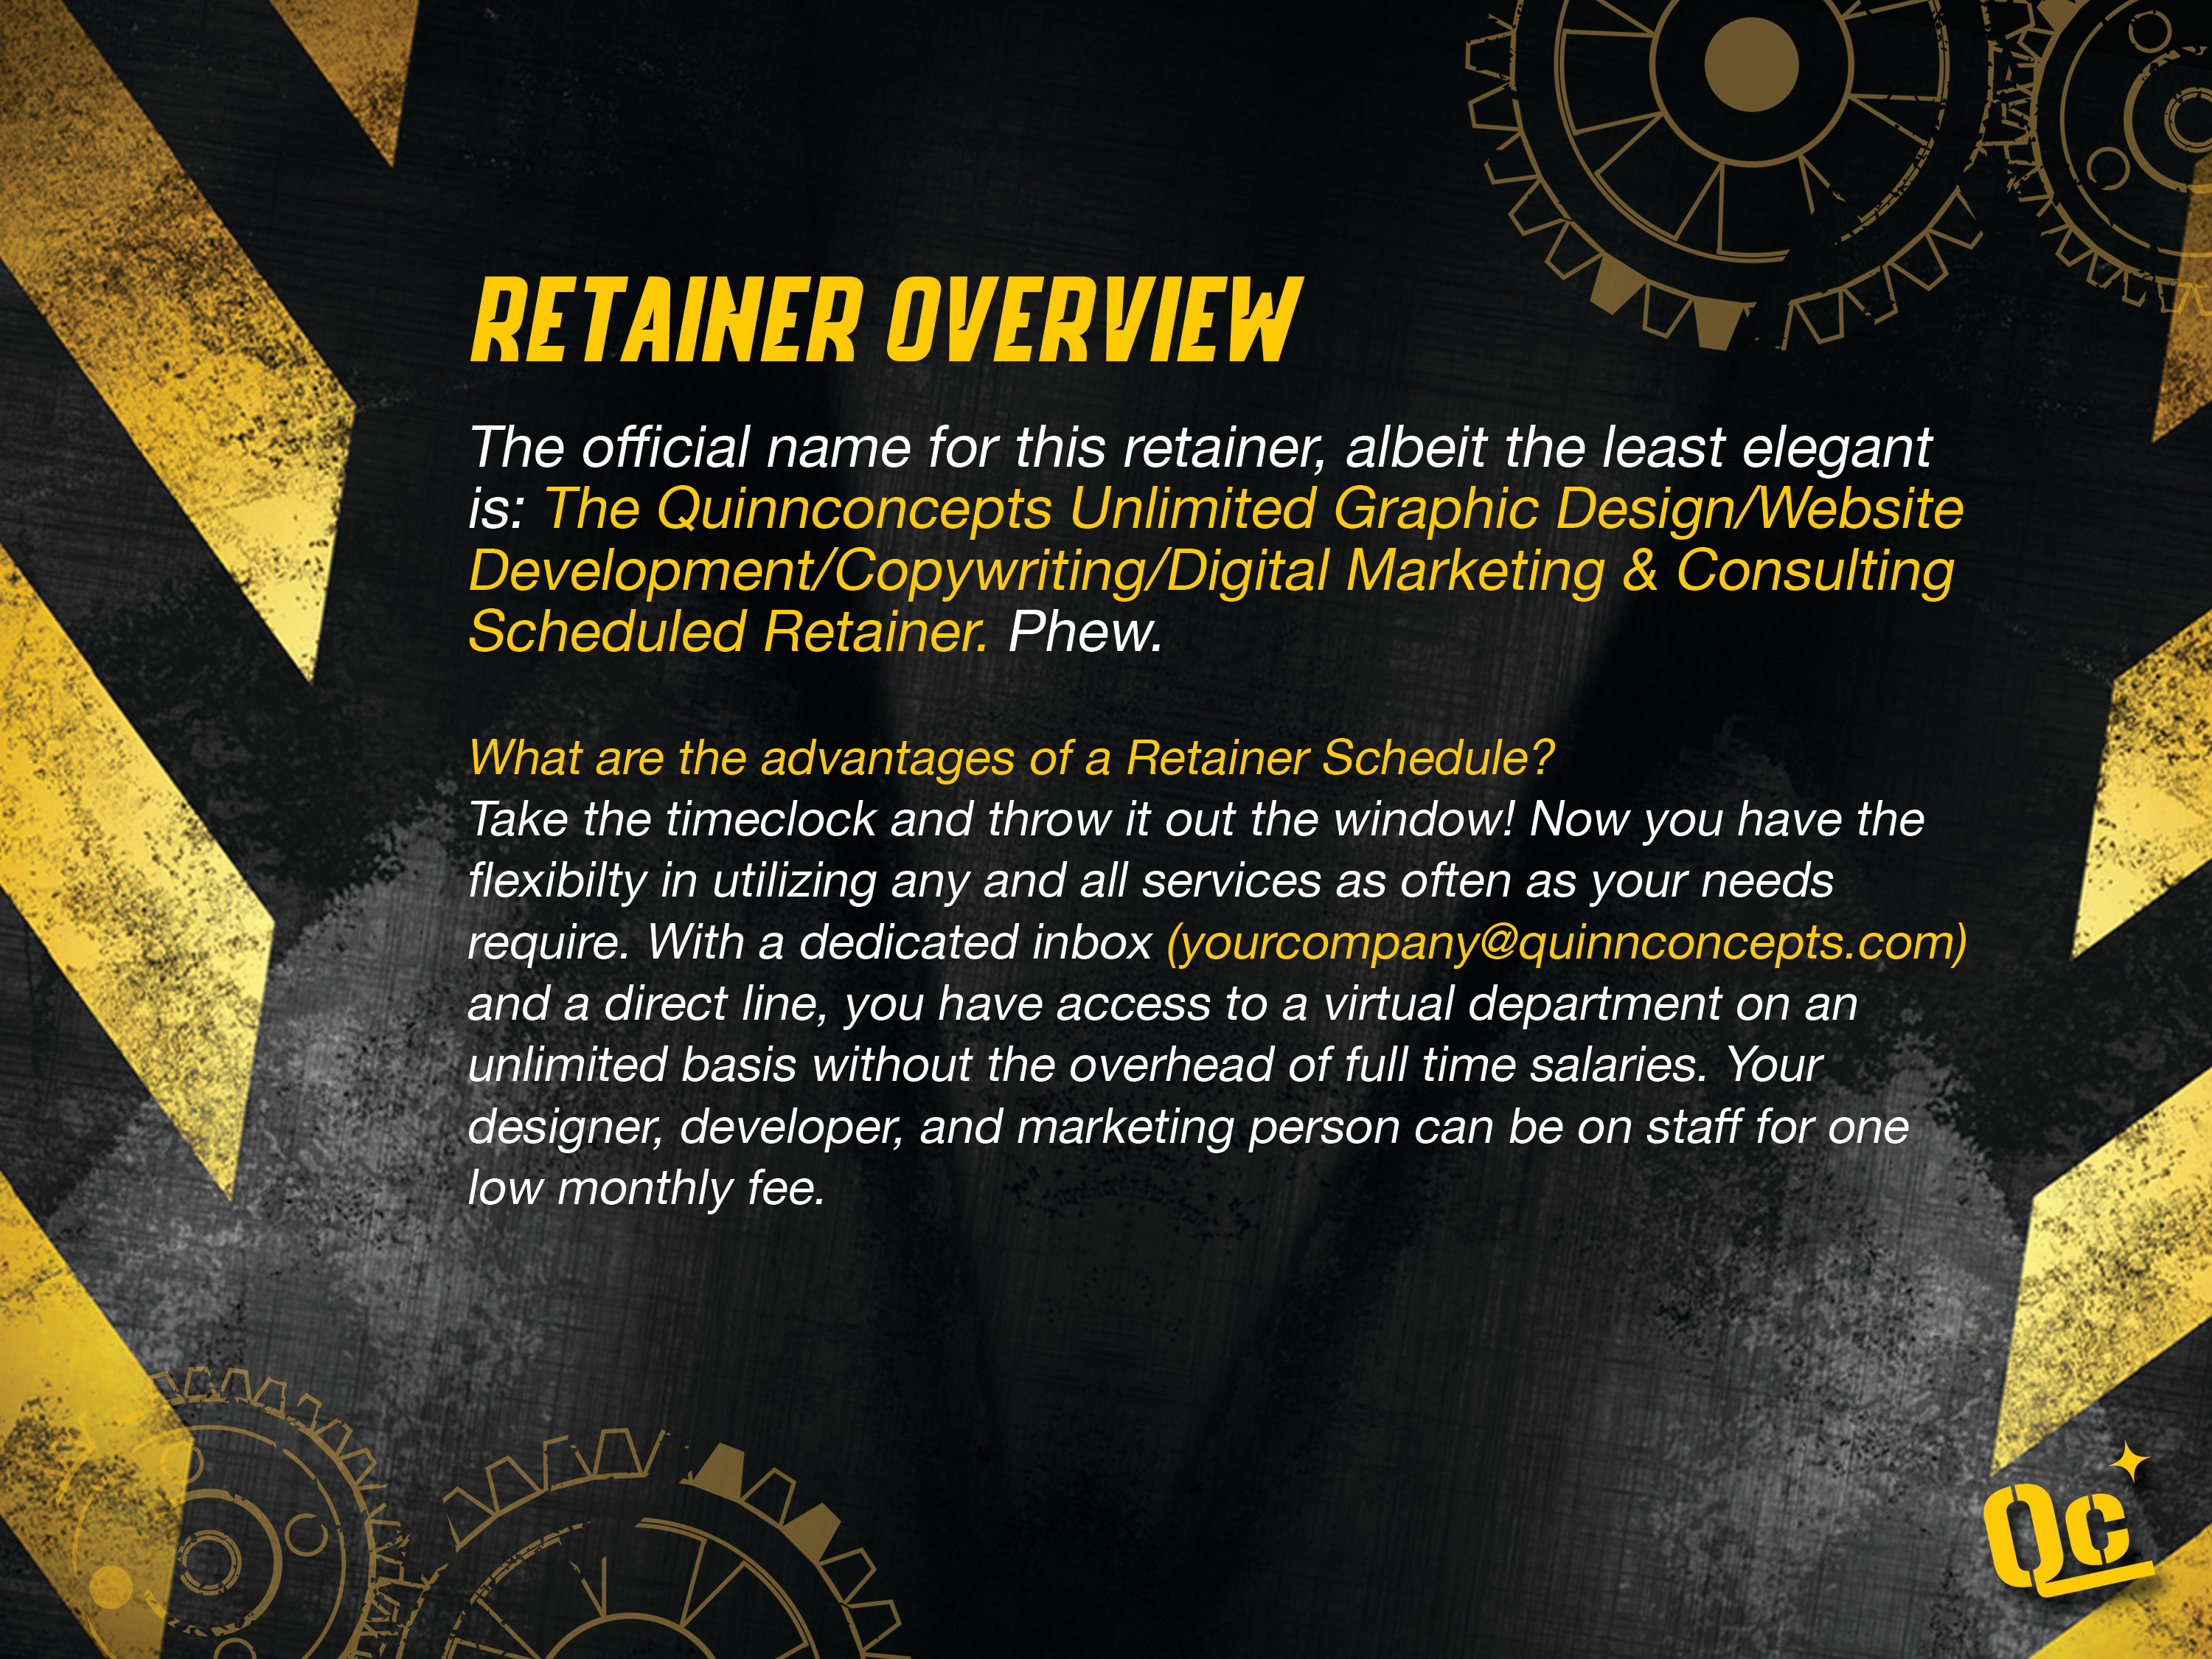 slide 2 - retainer overview